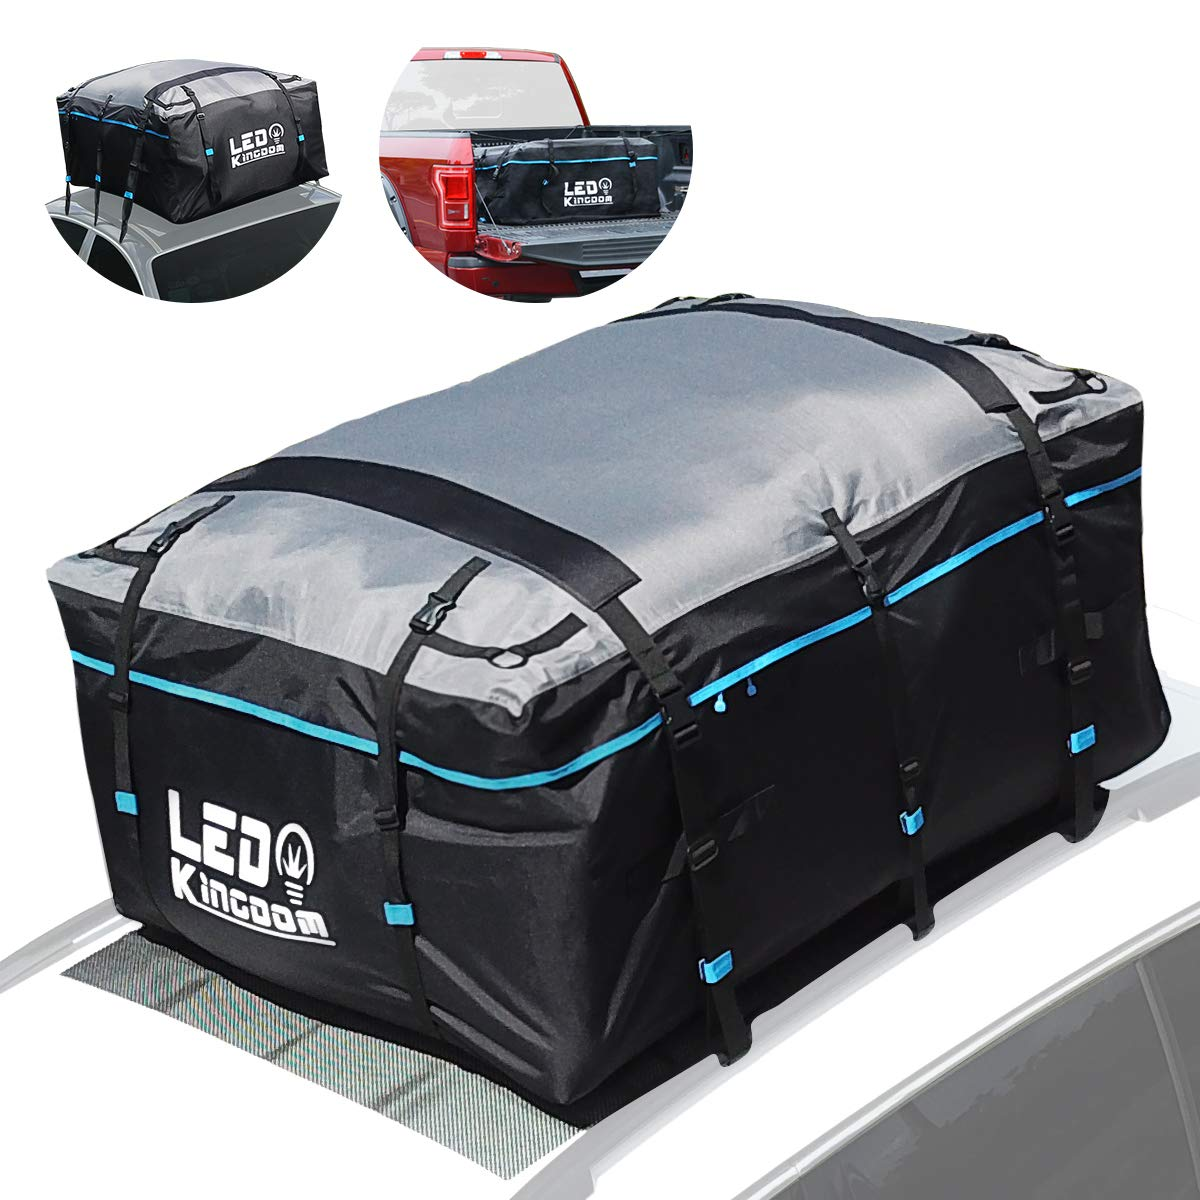 LED Kingdomus Roof Top Cargo Bag, Waterproof Truck Cargo 19cft 600D PVC Coating Soft Shell Carrier Bag for All Cars and Truck Pickup with/Without Rack-Car Roof Mat, Straps & Hooks Included by LED Kingdomus